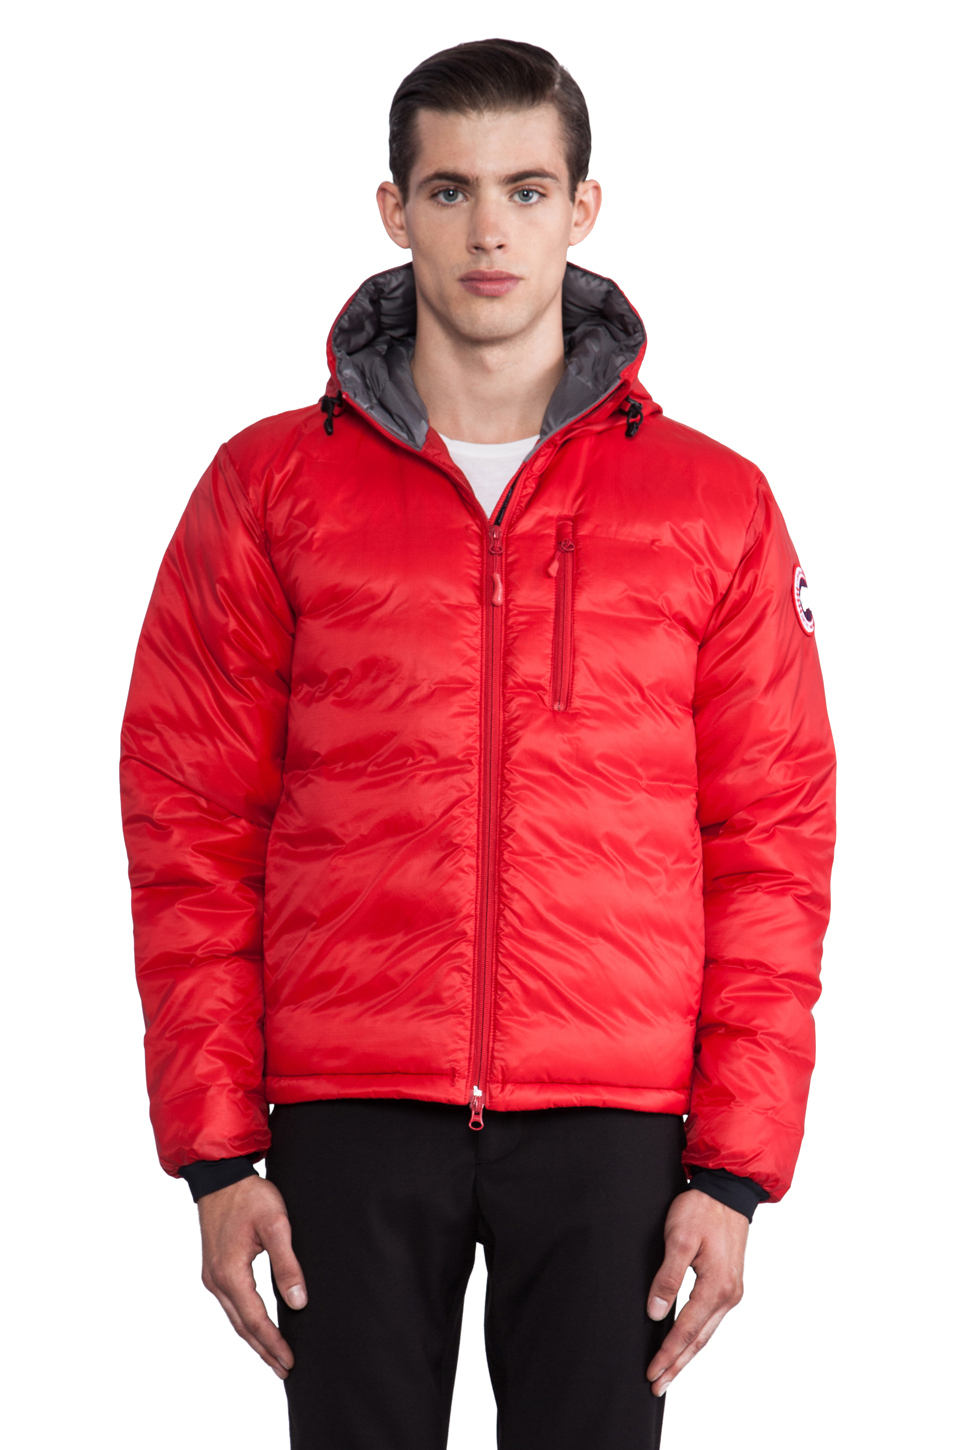 Nike Pullover Red Lyst Canada Goose Lodge Hoody In Red For Men